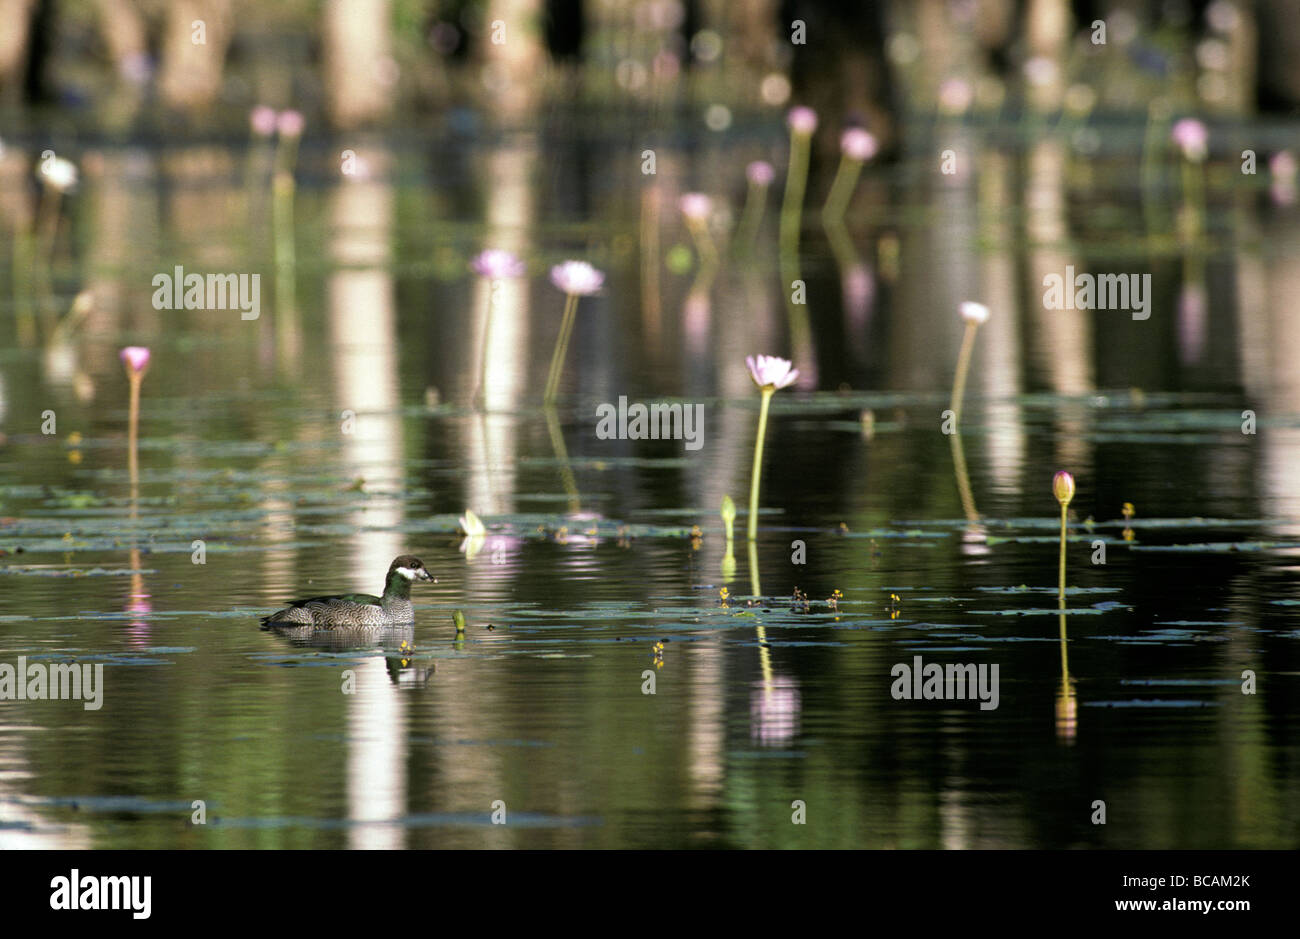 A male Green Pygymy-Goose swims on a wetland covered in water lilies. - Stock Image